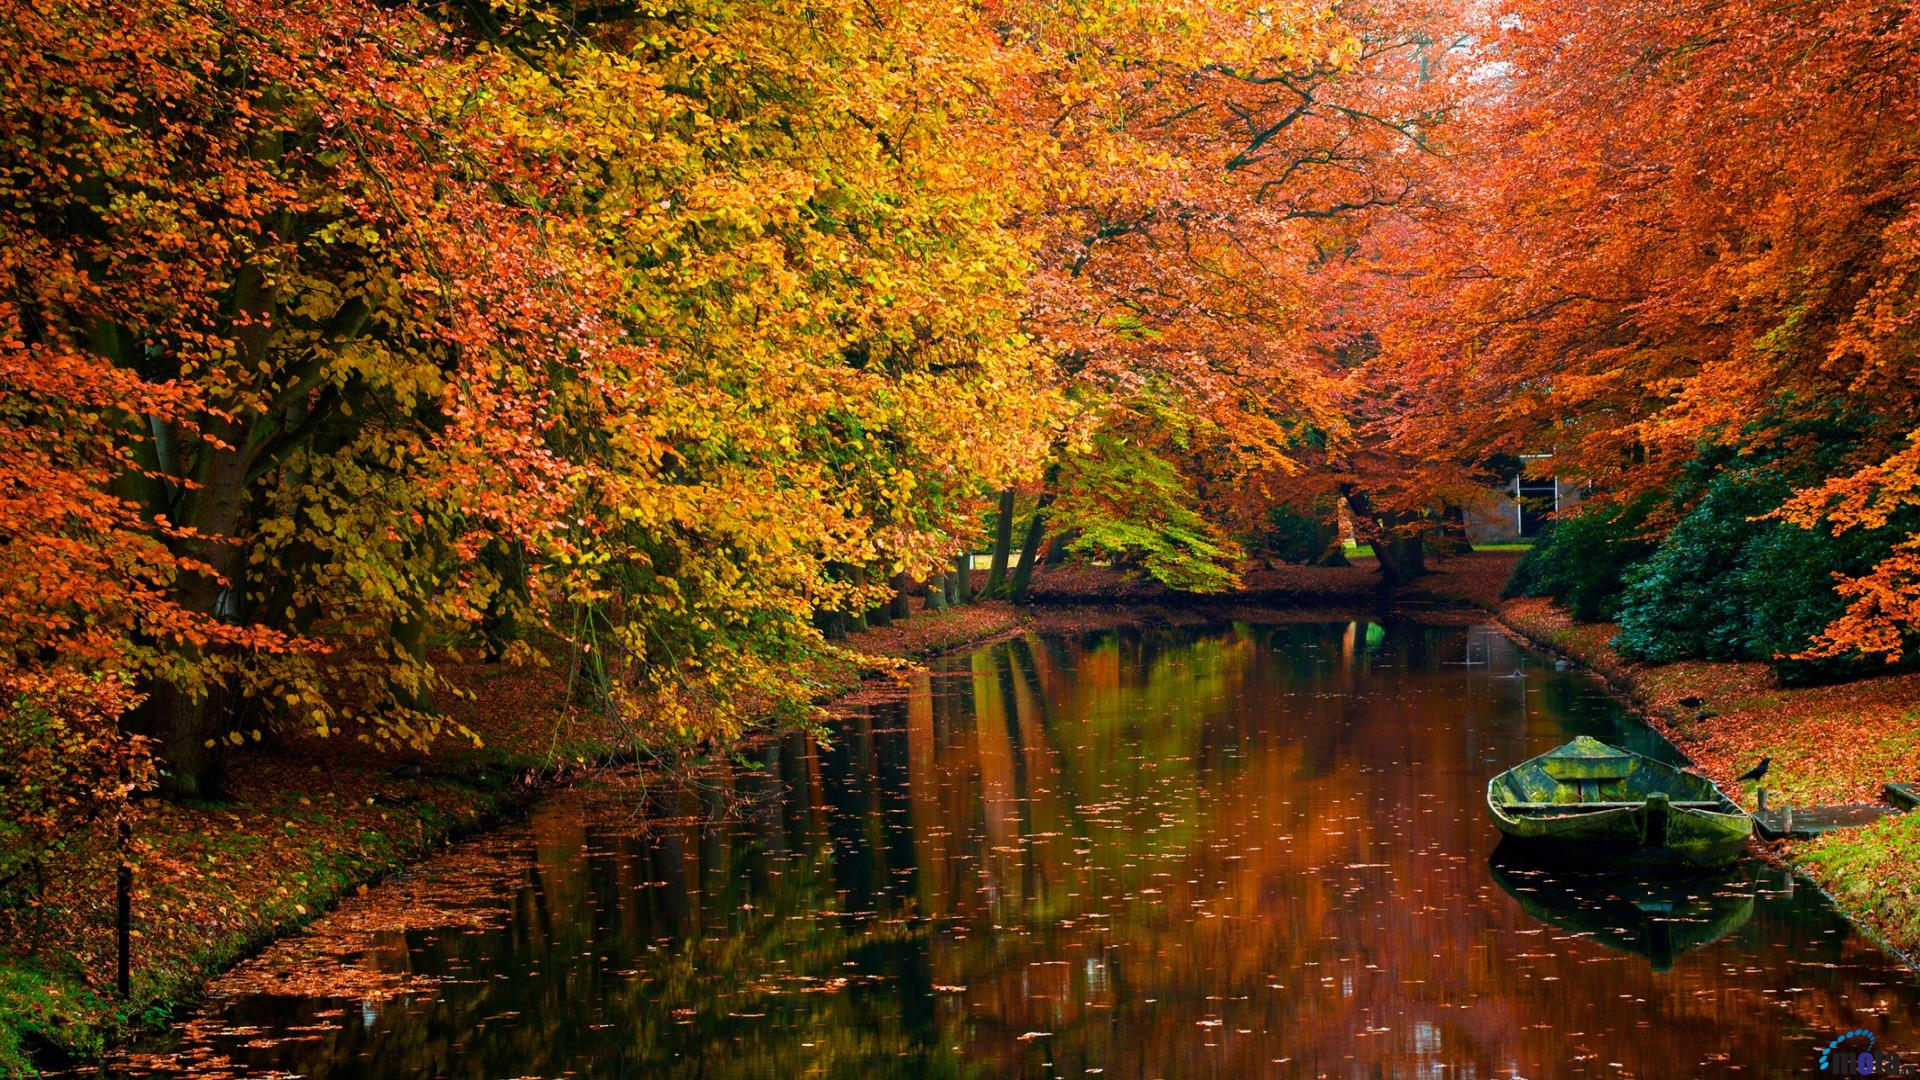 Download Wallpaper Autumn colors in the forest 1920 x 1080 HDTV 1080p 1920x1080